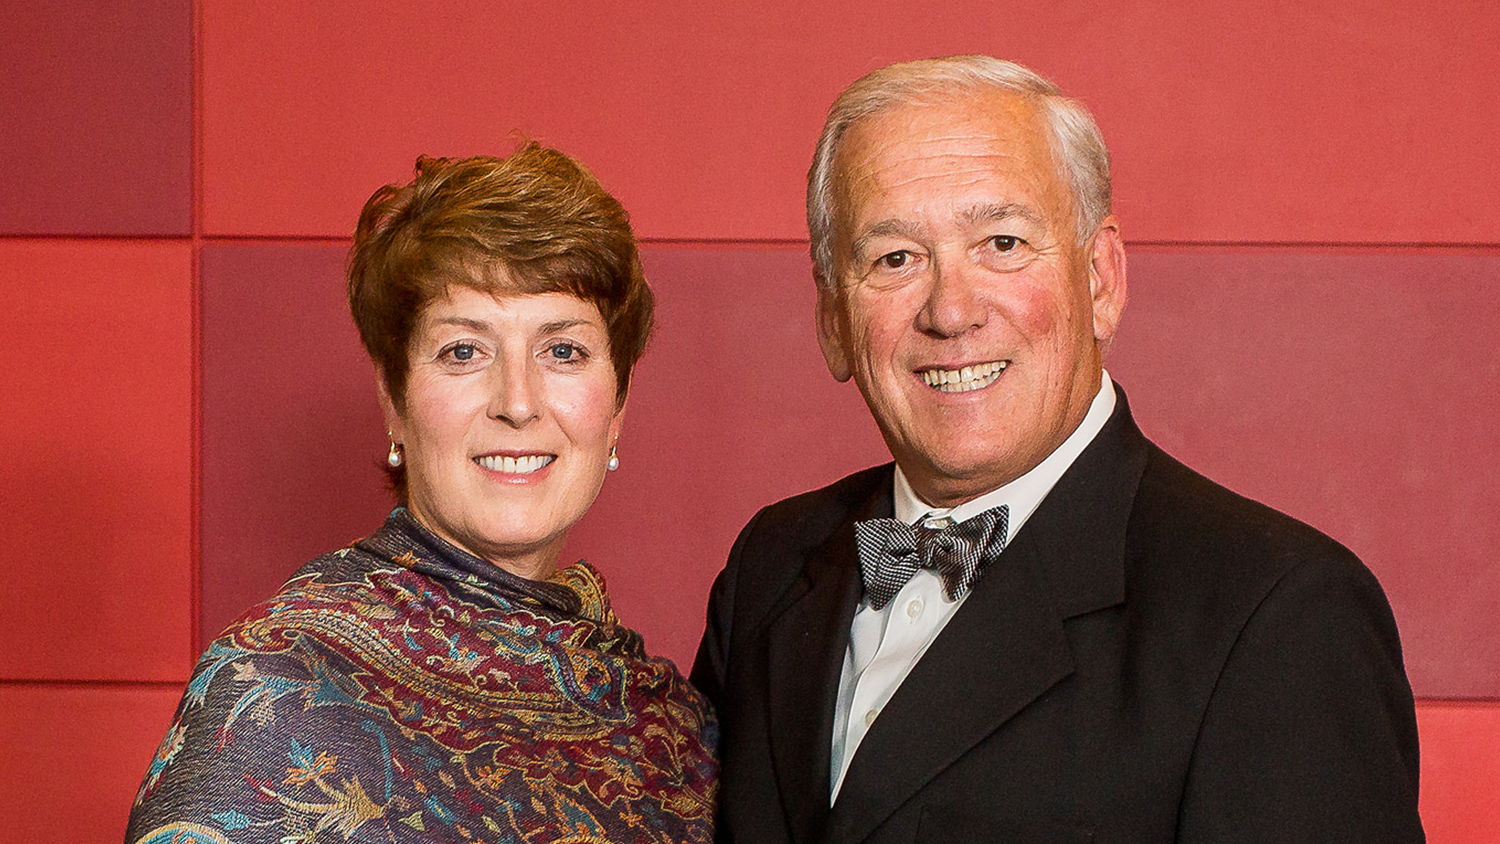 Jim Wall and his wife